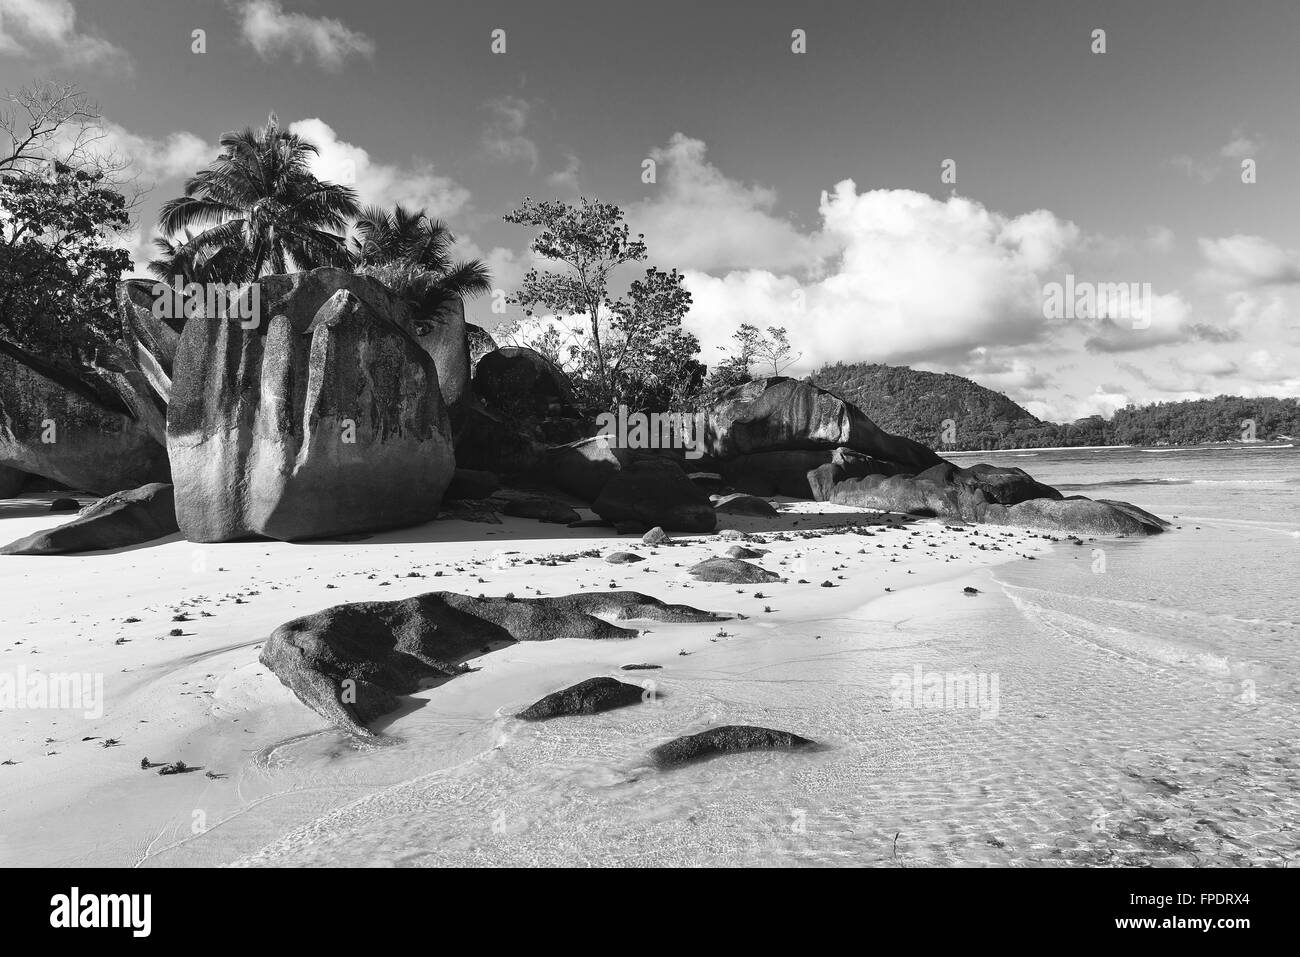 Large Rock Formations on Isolated Beach Paradise at Anse Lislette, Seychelles - Stock Image